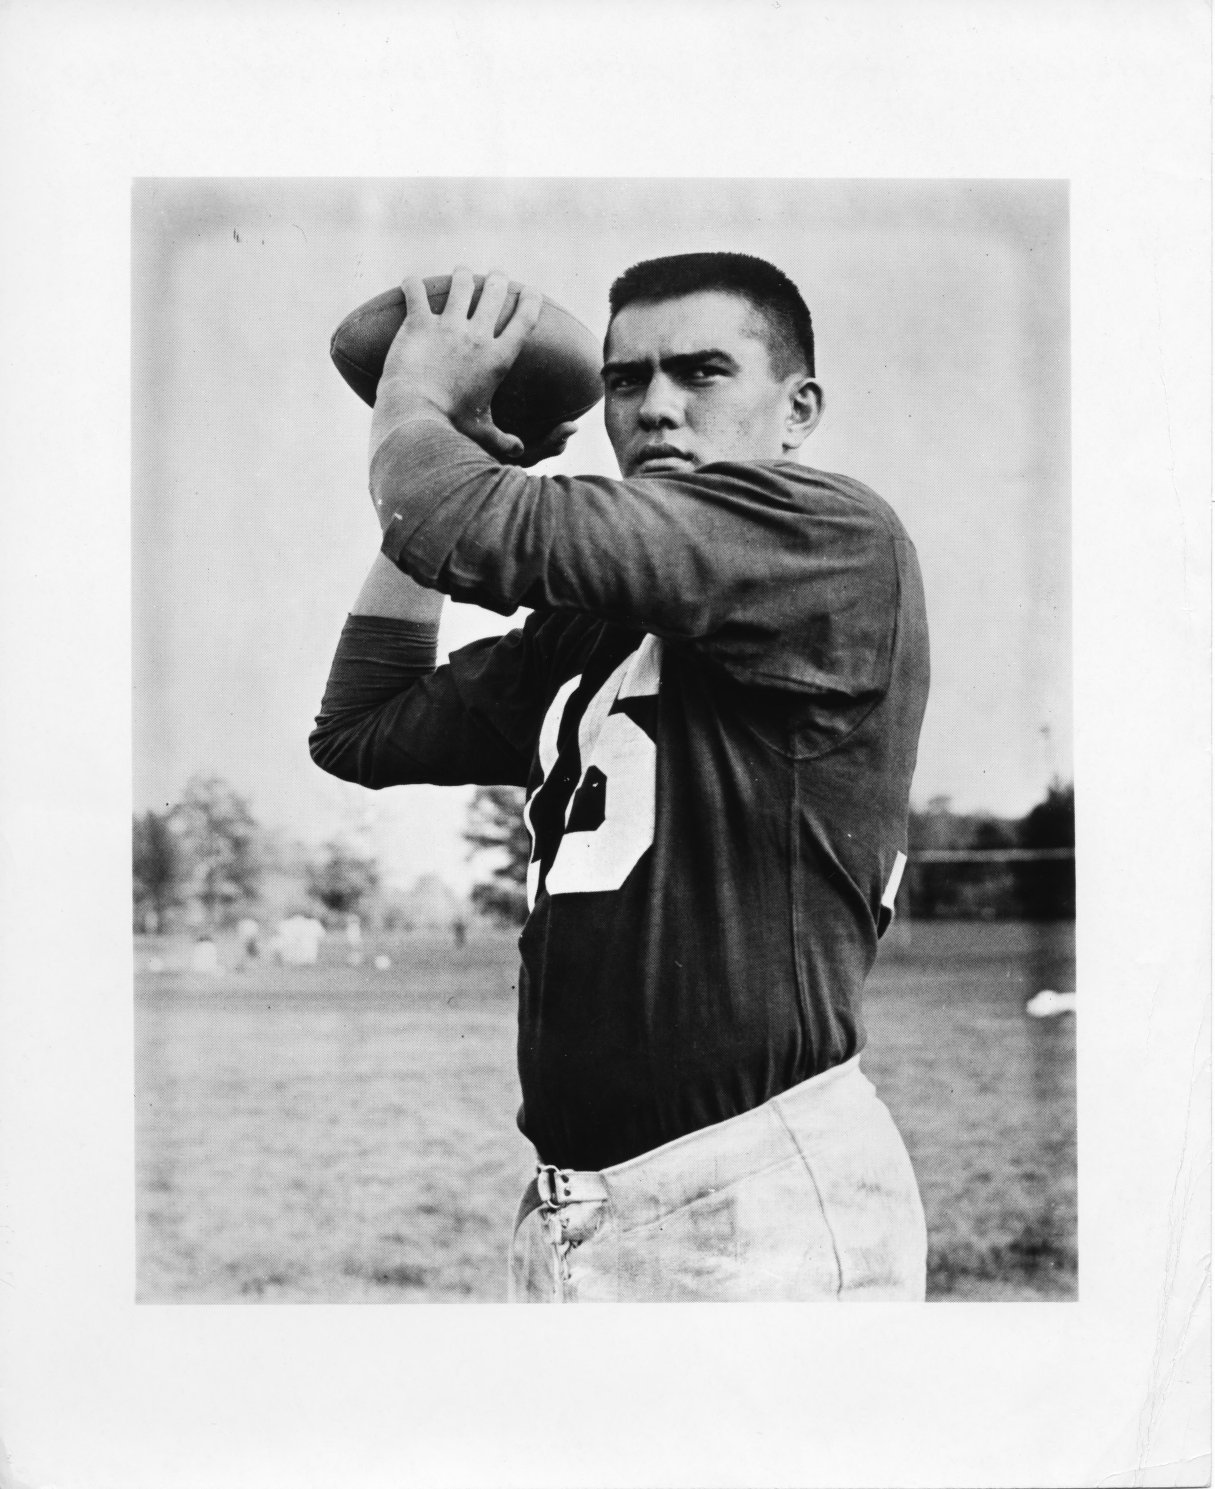 Two-time all-American quarterback Roman Gabriel. Image courtesy of NCSU Libraries.